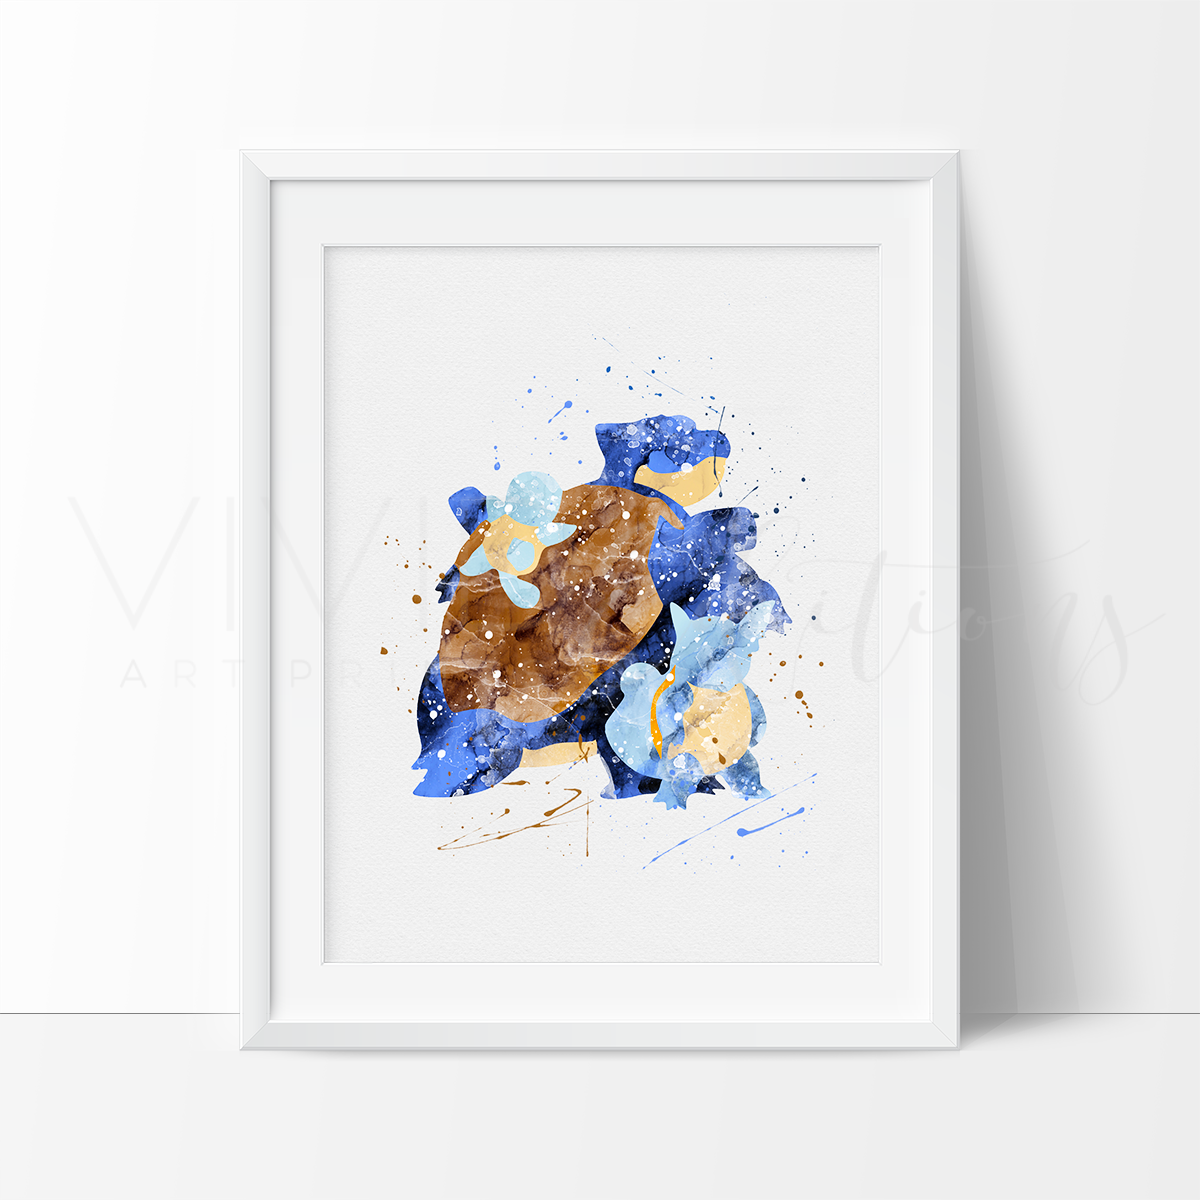 Squirtle, Wartortle & Blastoise, Pokemon Evolution Watercolor Art Print Art Print - VIVIDEDITIONS